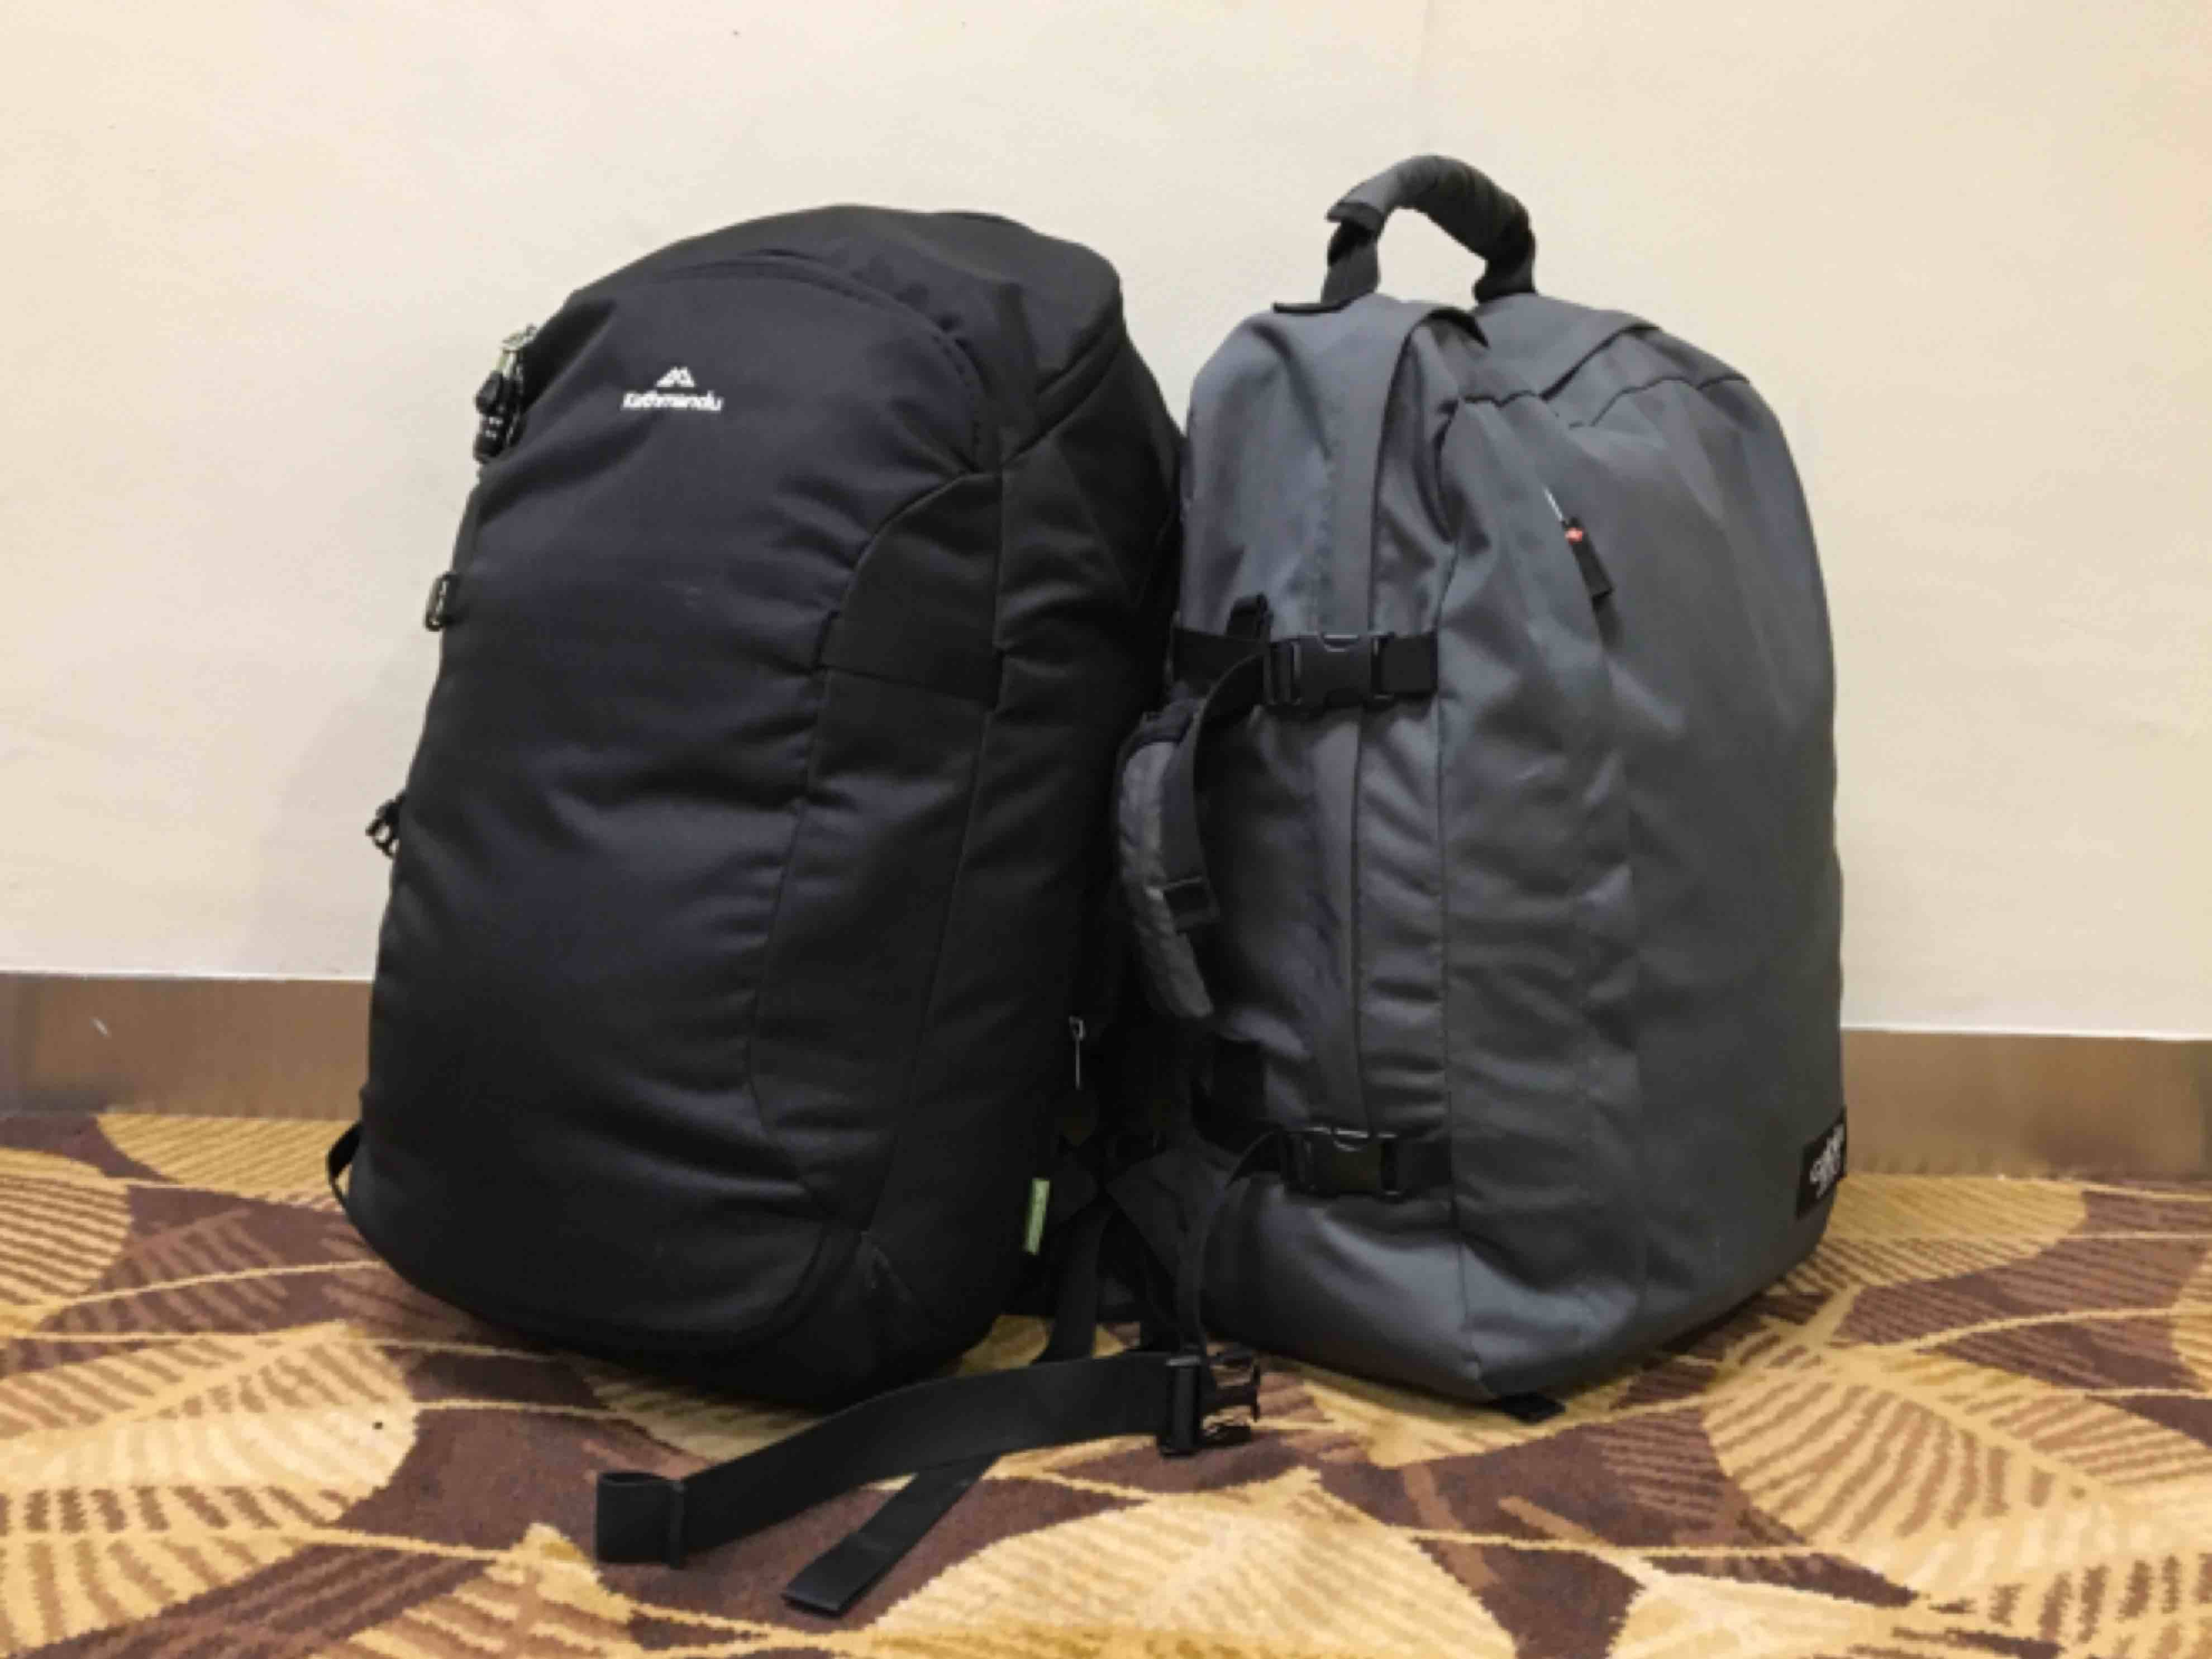 Our larger carry-on bags